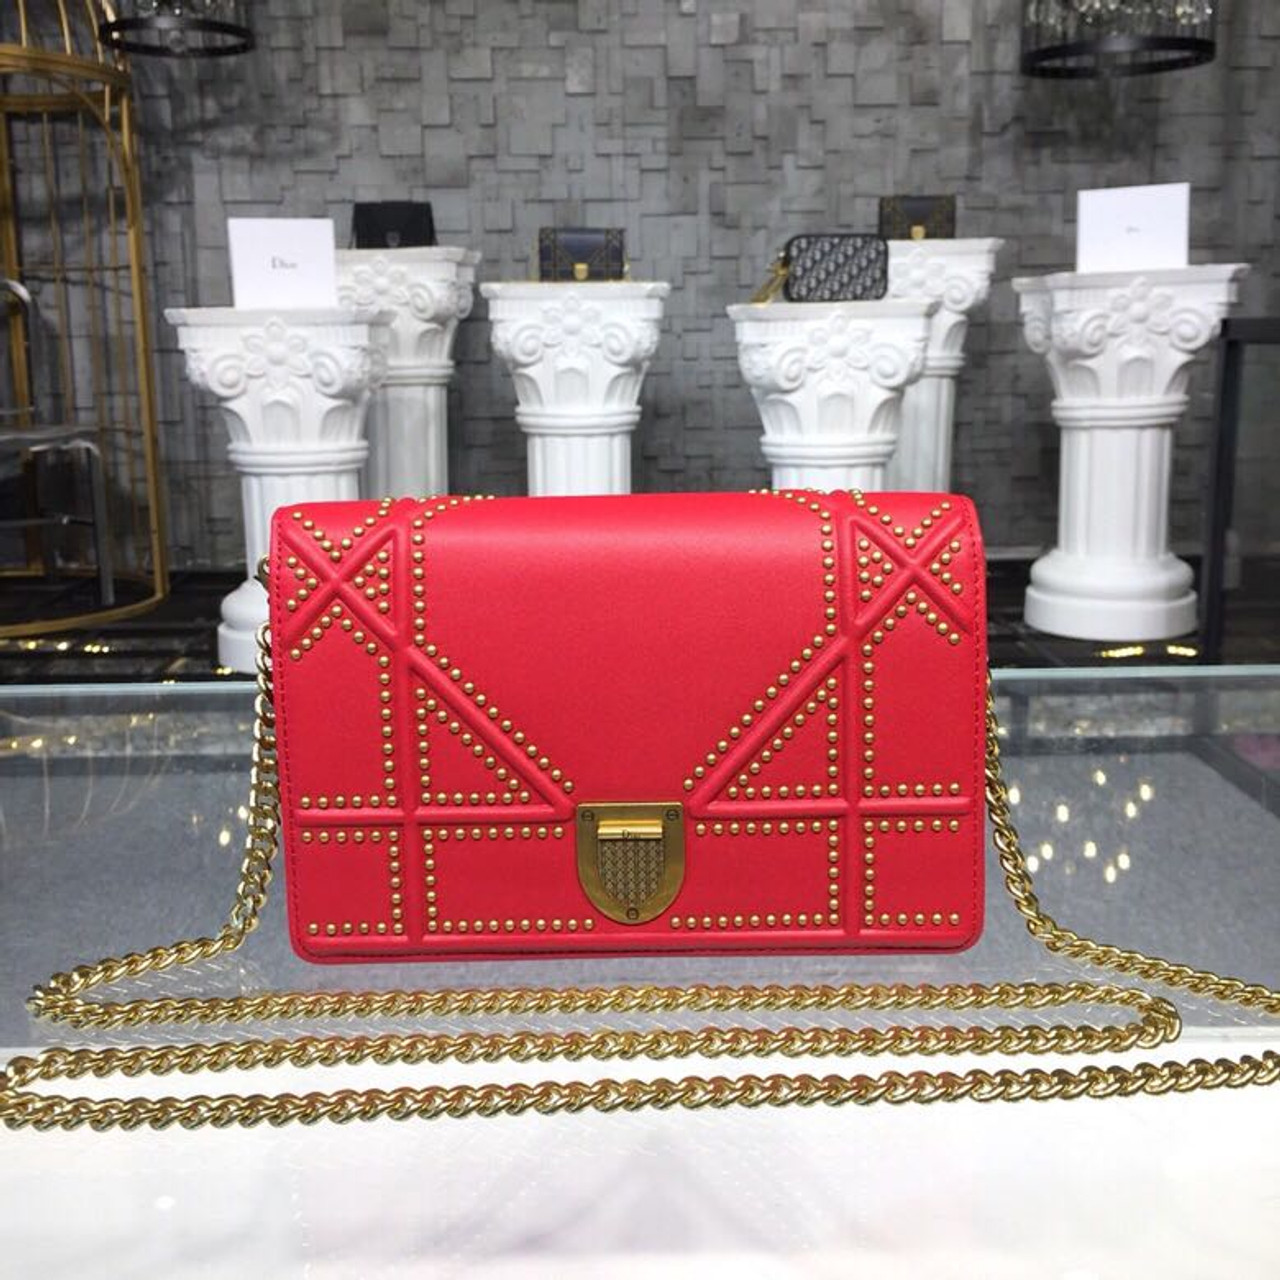 f64b5865a0 Christian Dior Diorama Studded WOC Chain Clutch 20cm Calfskin Leather  Fall/Winter 2018 Collection, Red